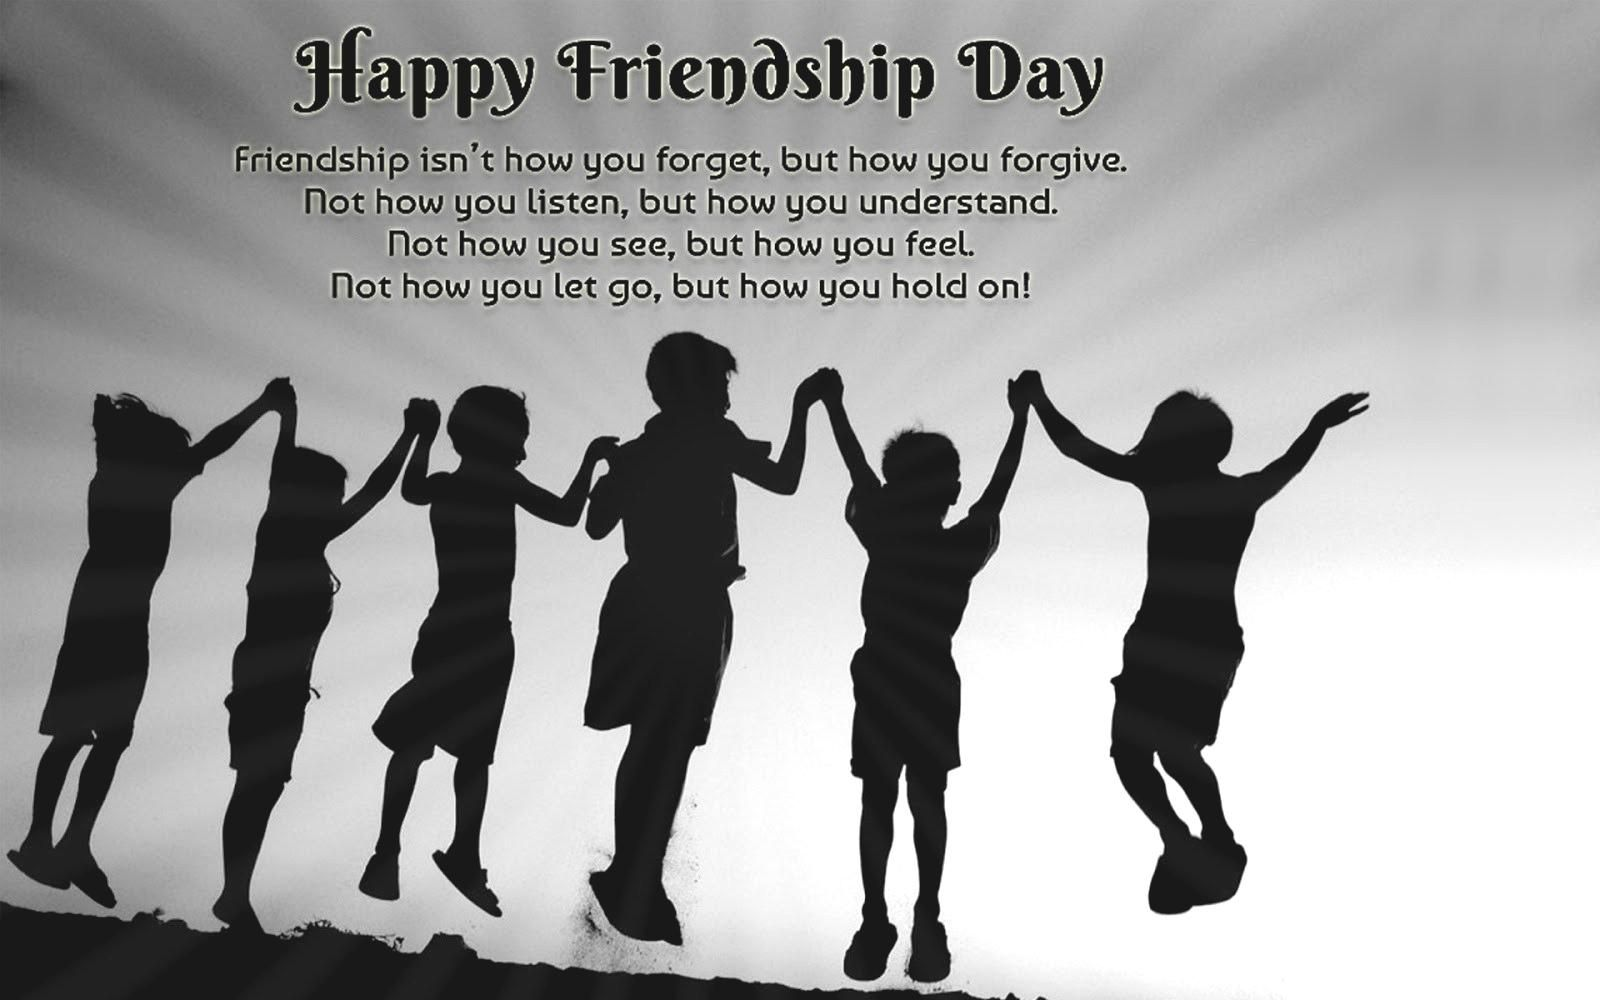 Happy Friendship Day Hd Images August 5 2018 1077 Friendshipday Friendship Happy Friendship Day Quotes Friendship Day Quotes Happy Friendship Day